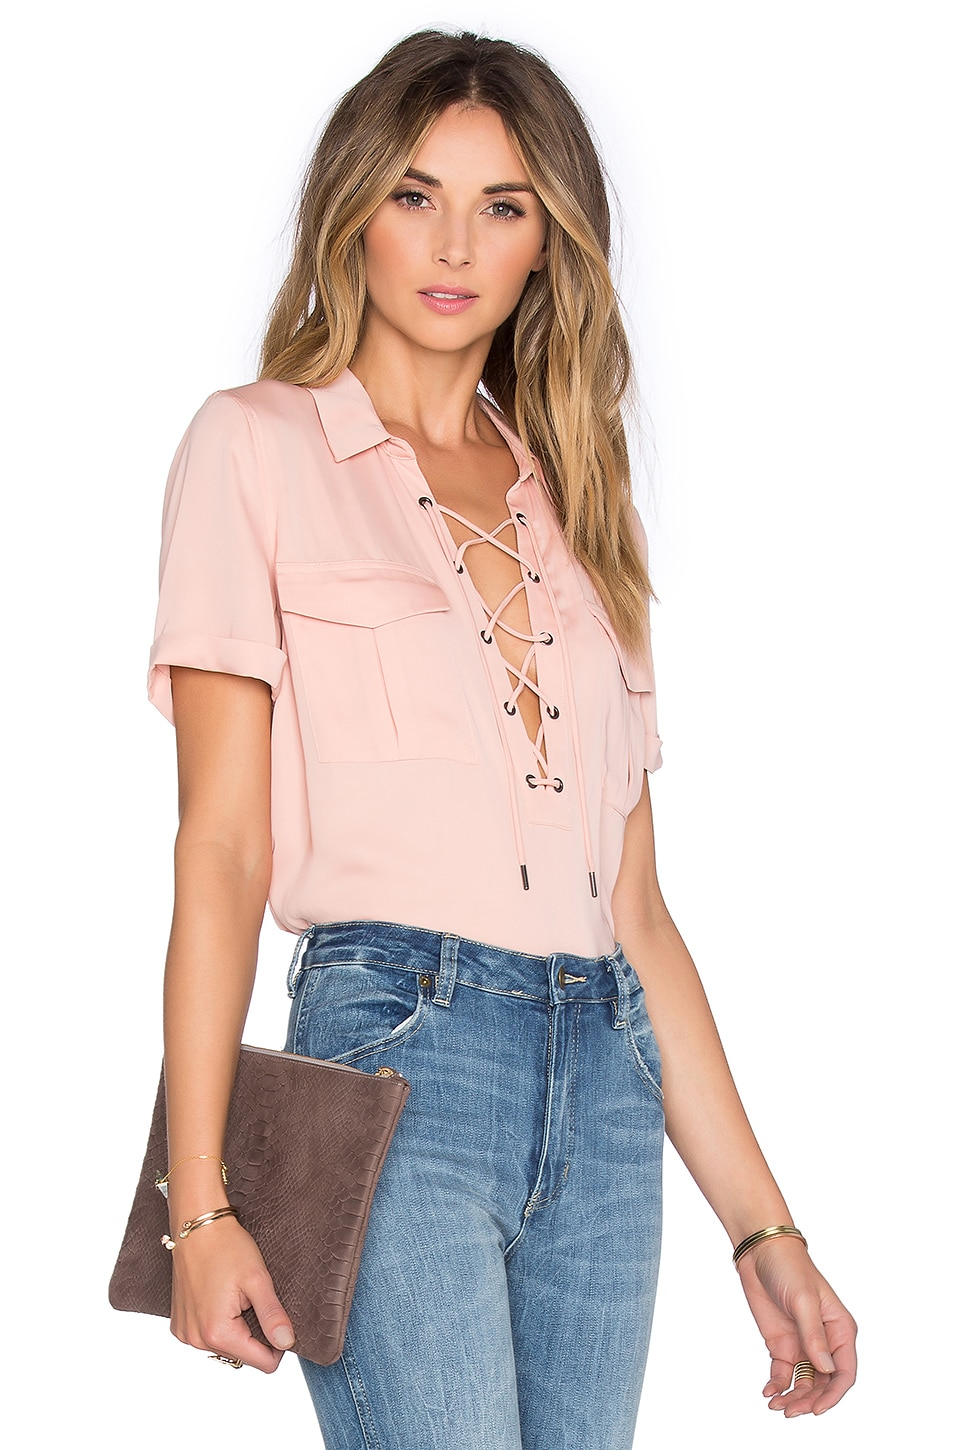 L'Academie The Safari Blouse in Blush